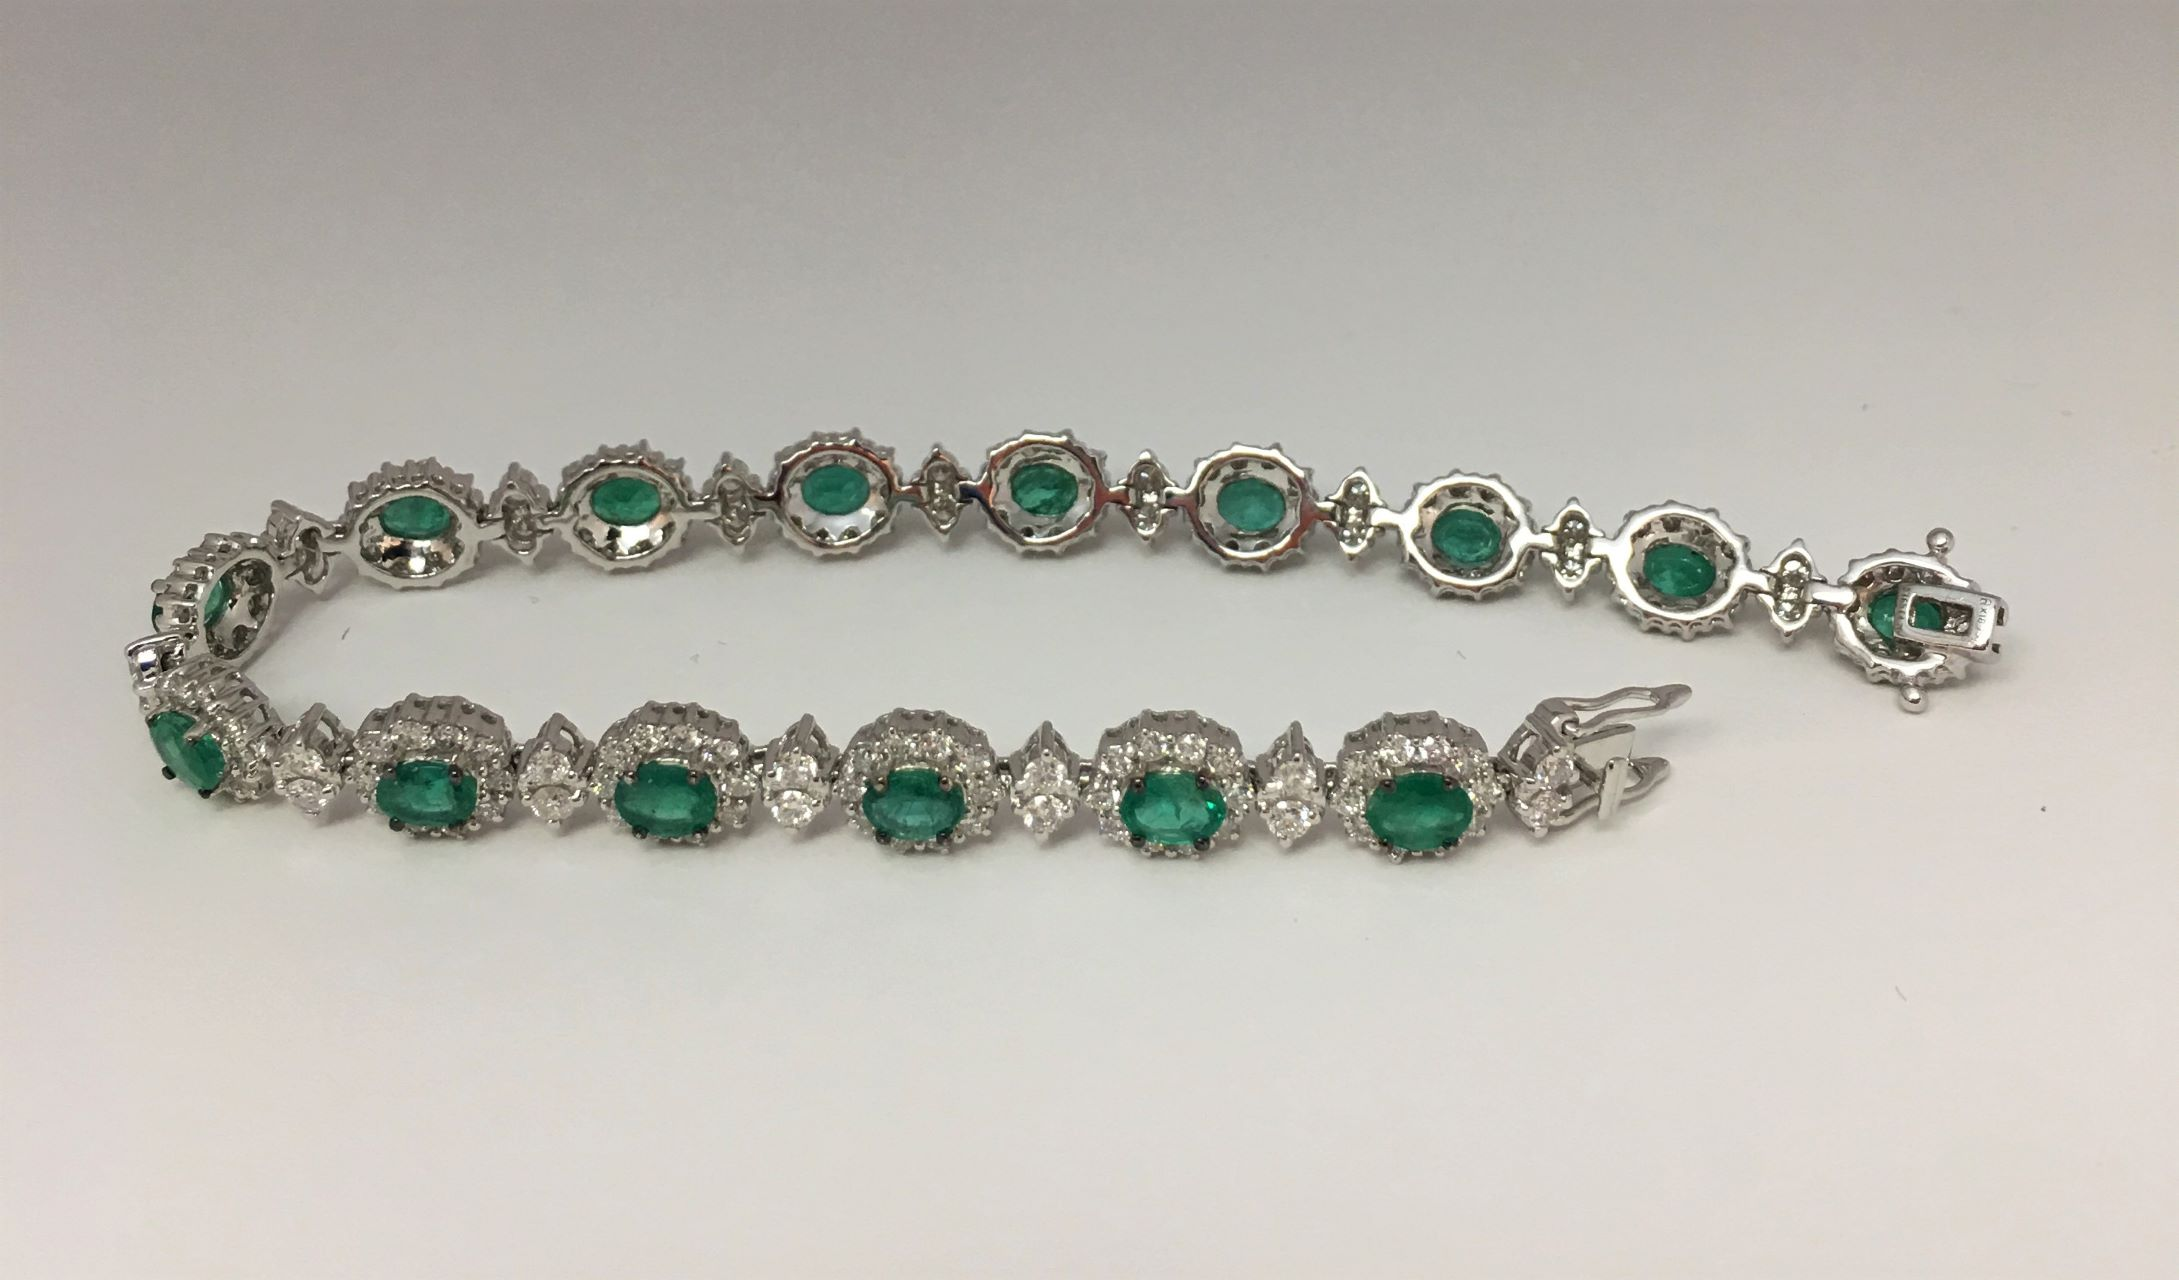 Over 4.5 Carats Emerald & Diamond Bracelet